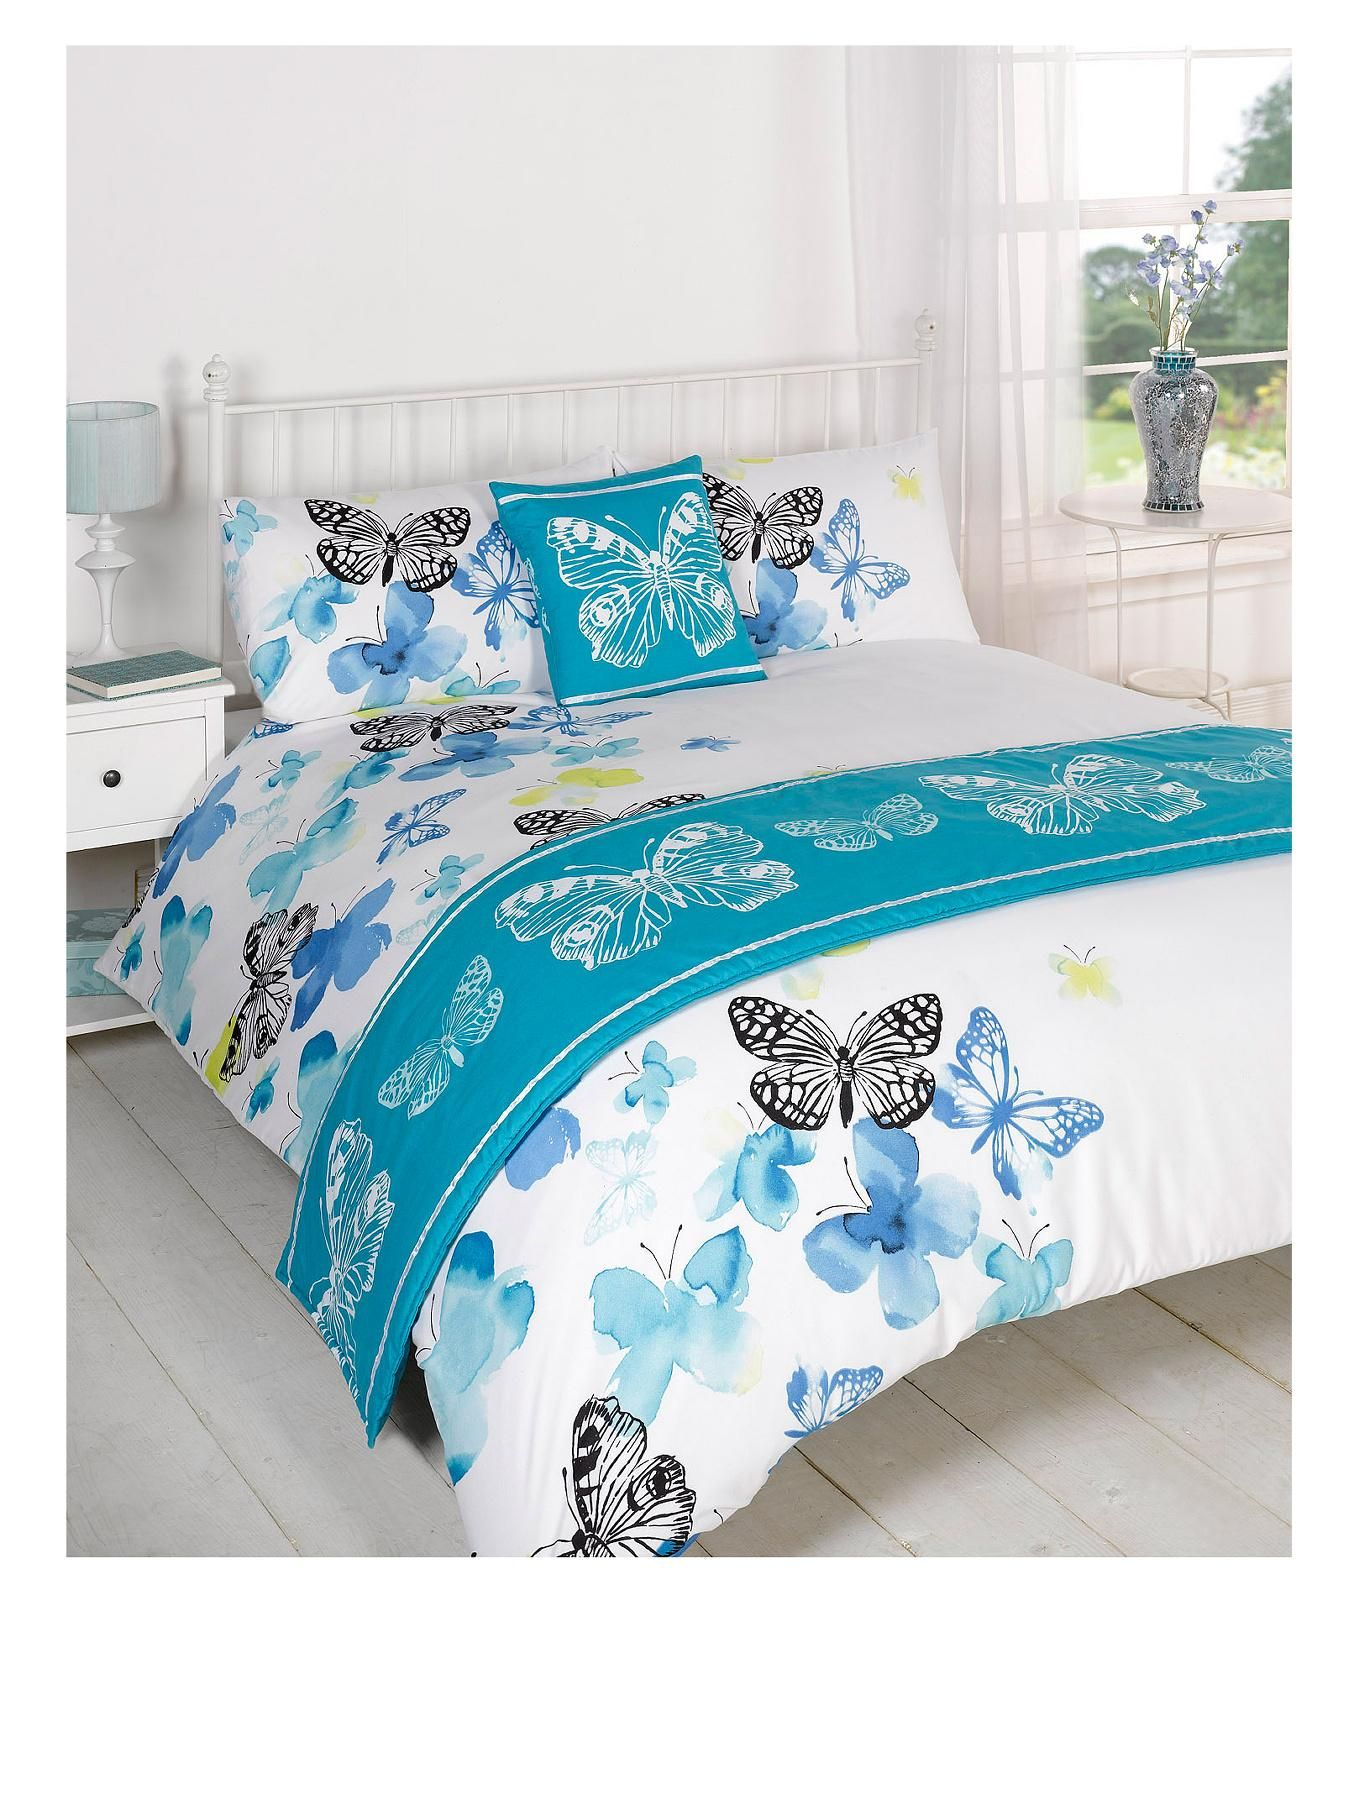 bed adults butterfly queen for black bedding king bedroom grey twin affordable adult cheap sets size comforter microsuede set